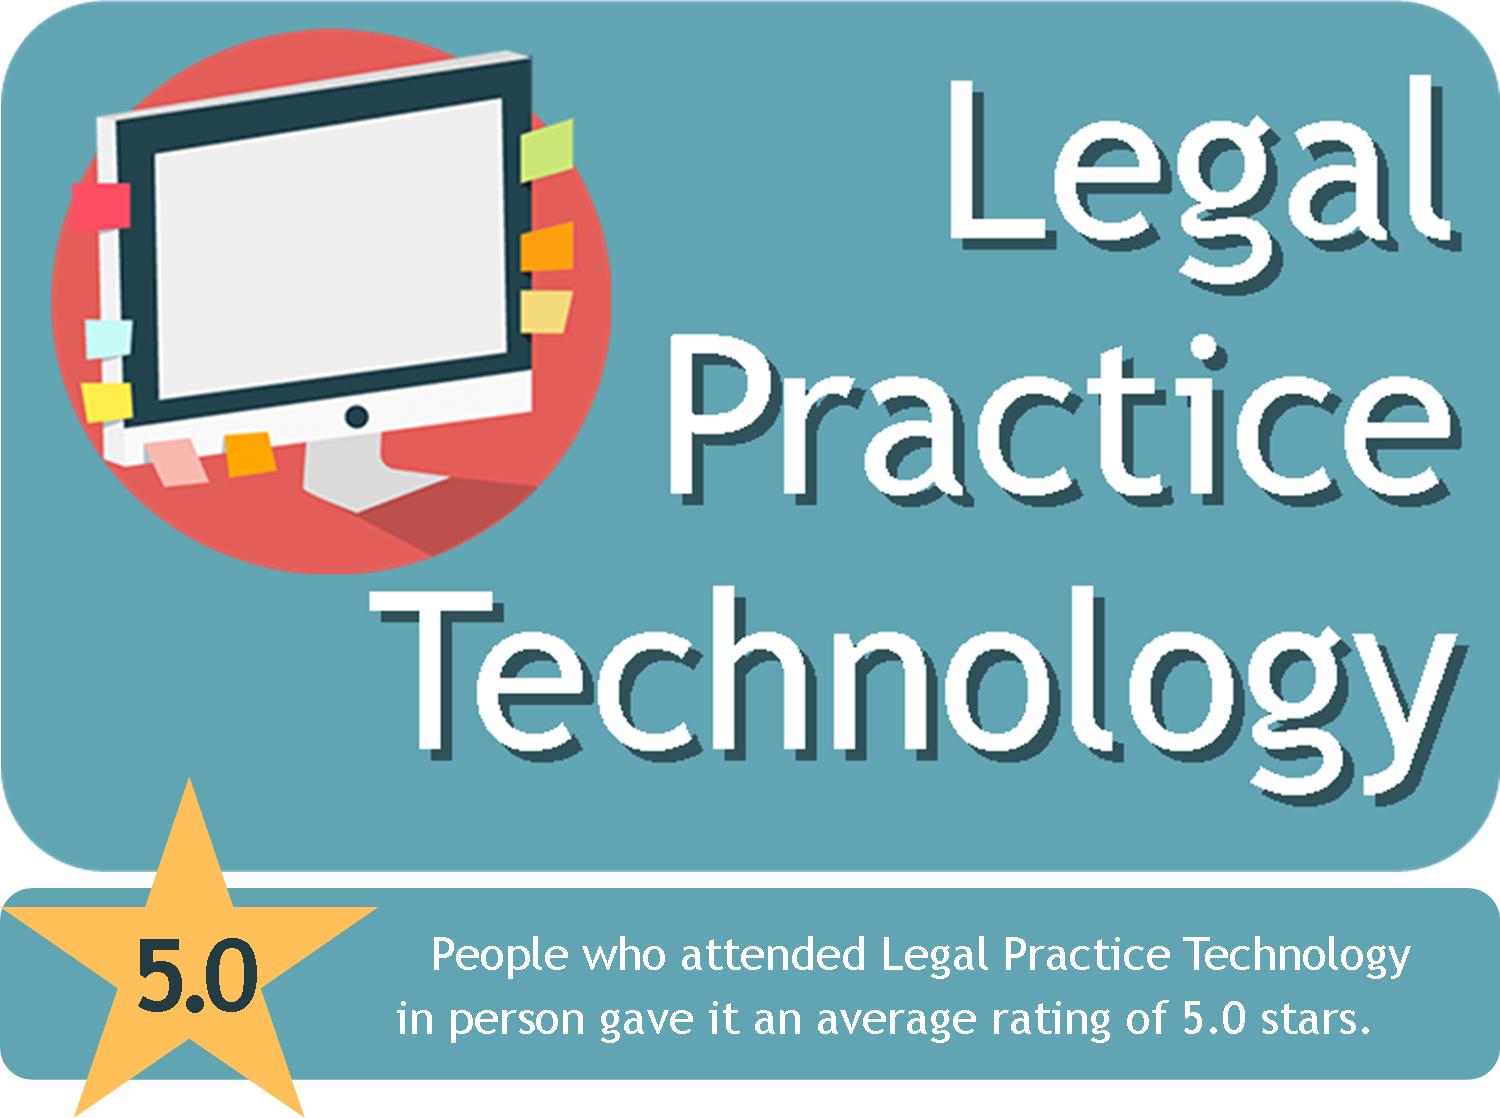 Click to view a recording of Legal Practice Technology and download course materials provided by the speaker.